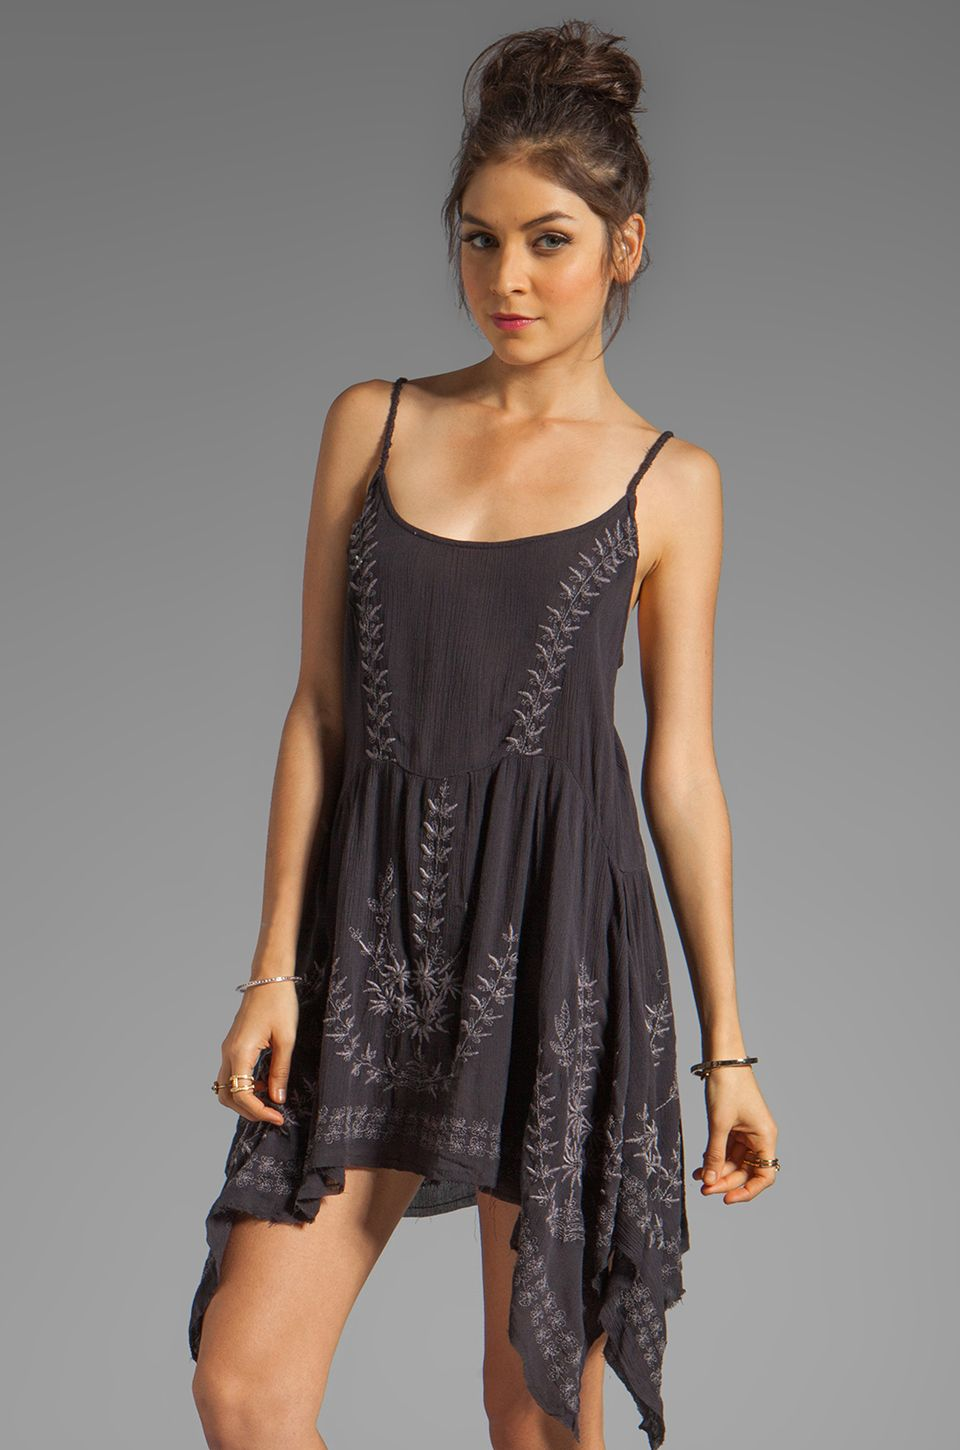 Free People Meadows of Medallion Slip Dress in Washed Black